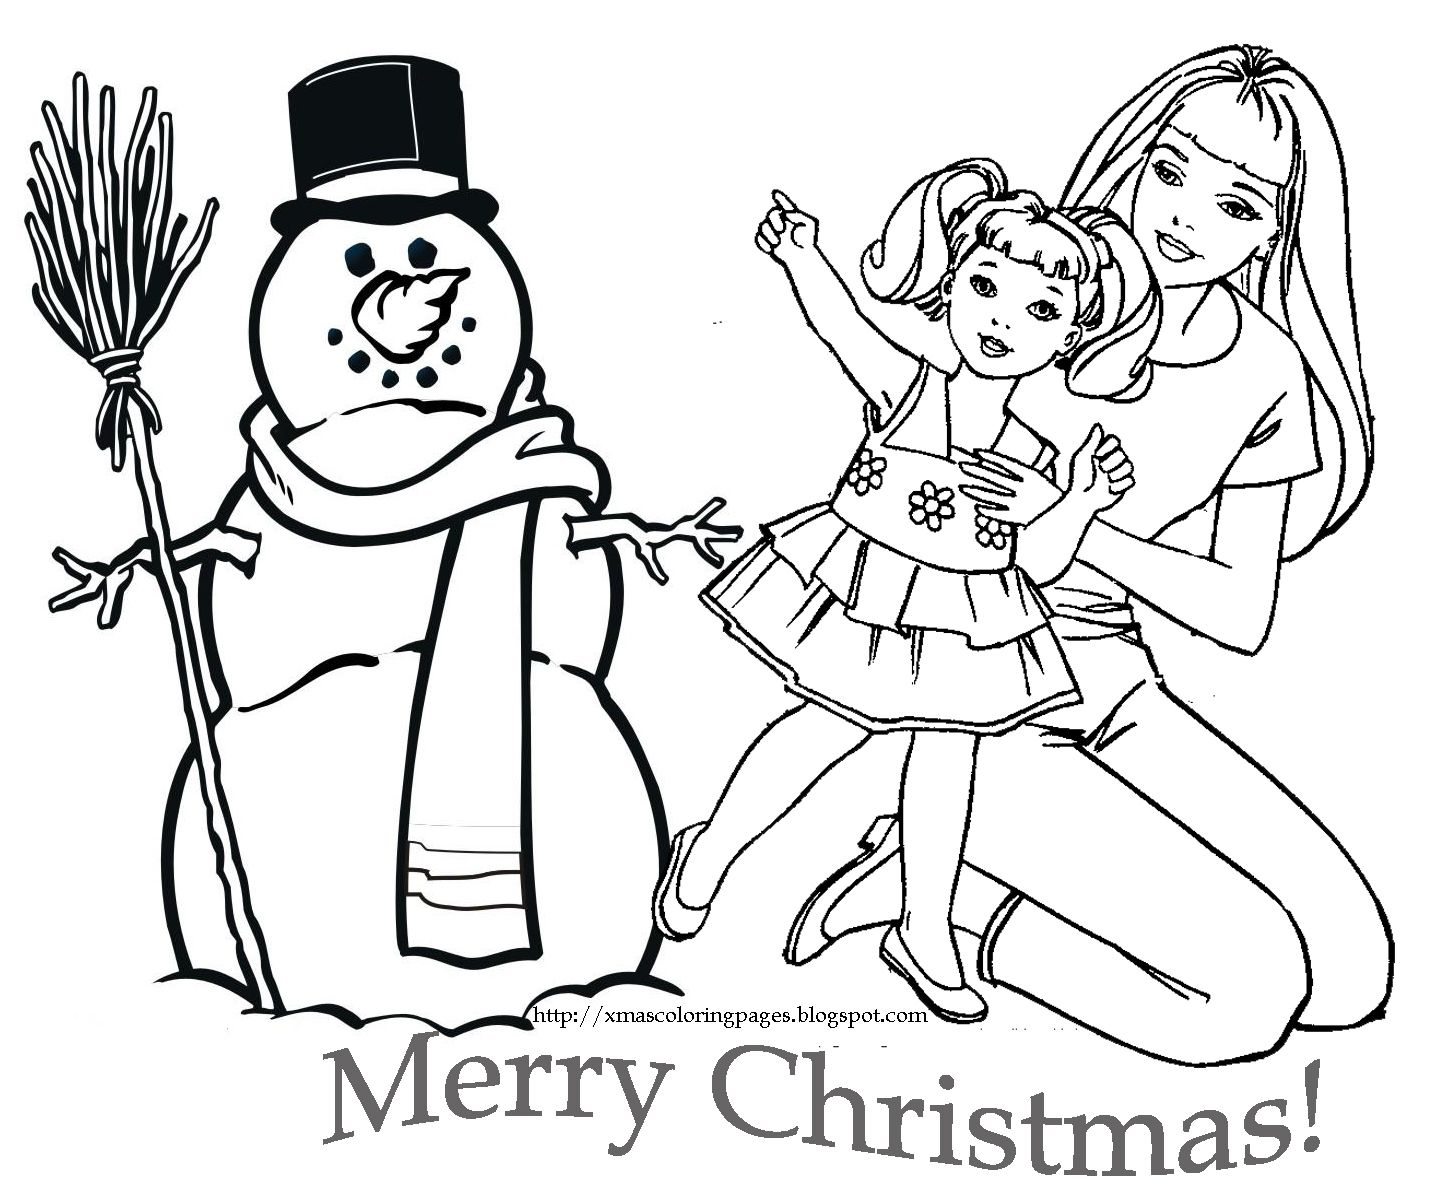 Barbie Christmas Coloring Pages To Print With LOVE THIS CHRISTMAS COLORING PAGE OF